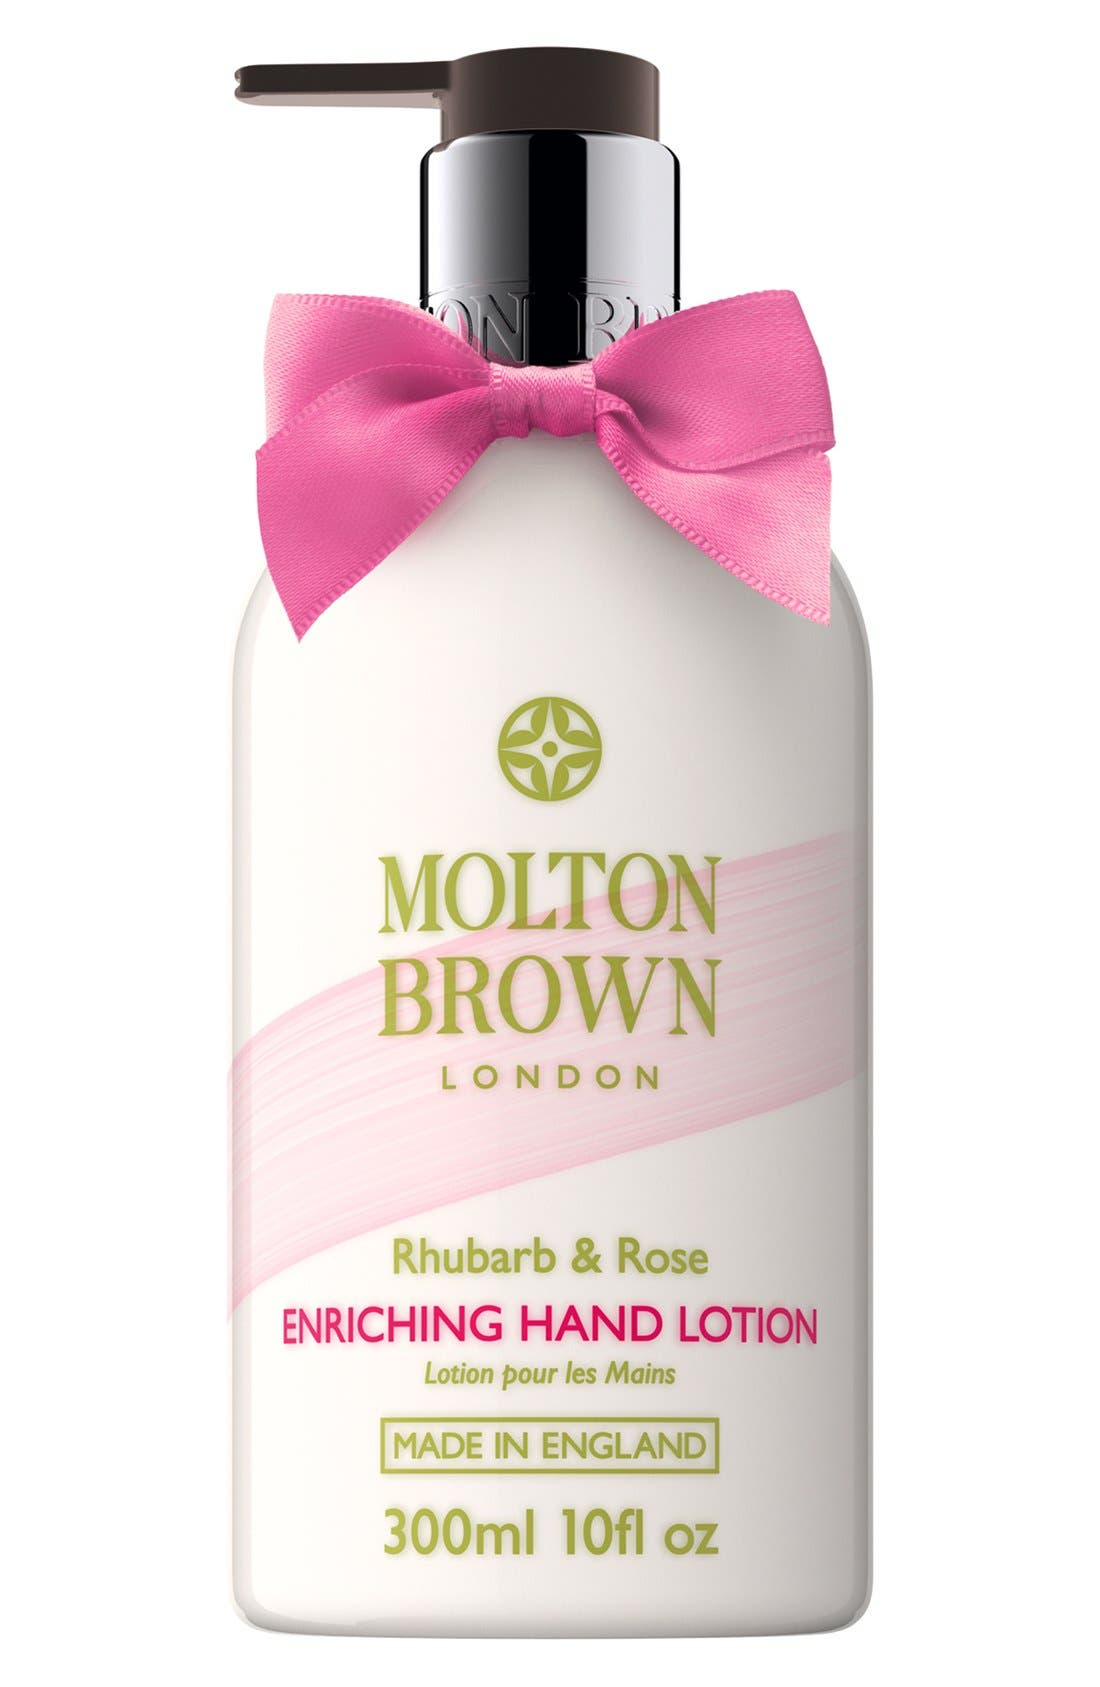 MOLTON BROWN London 'Rhubarb & Rose' Soothing Hand Lotion